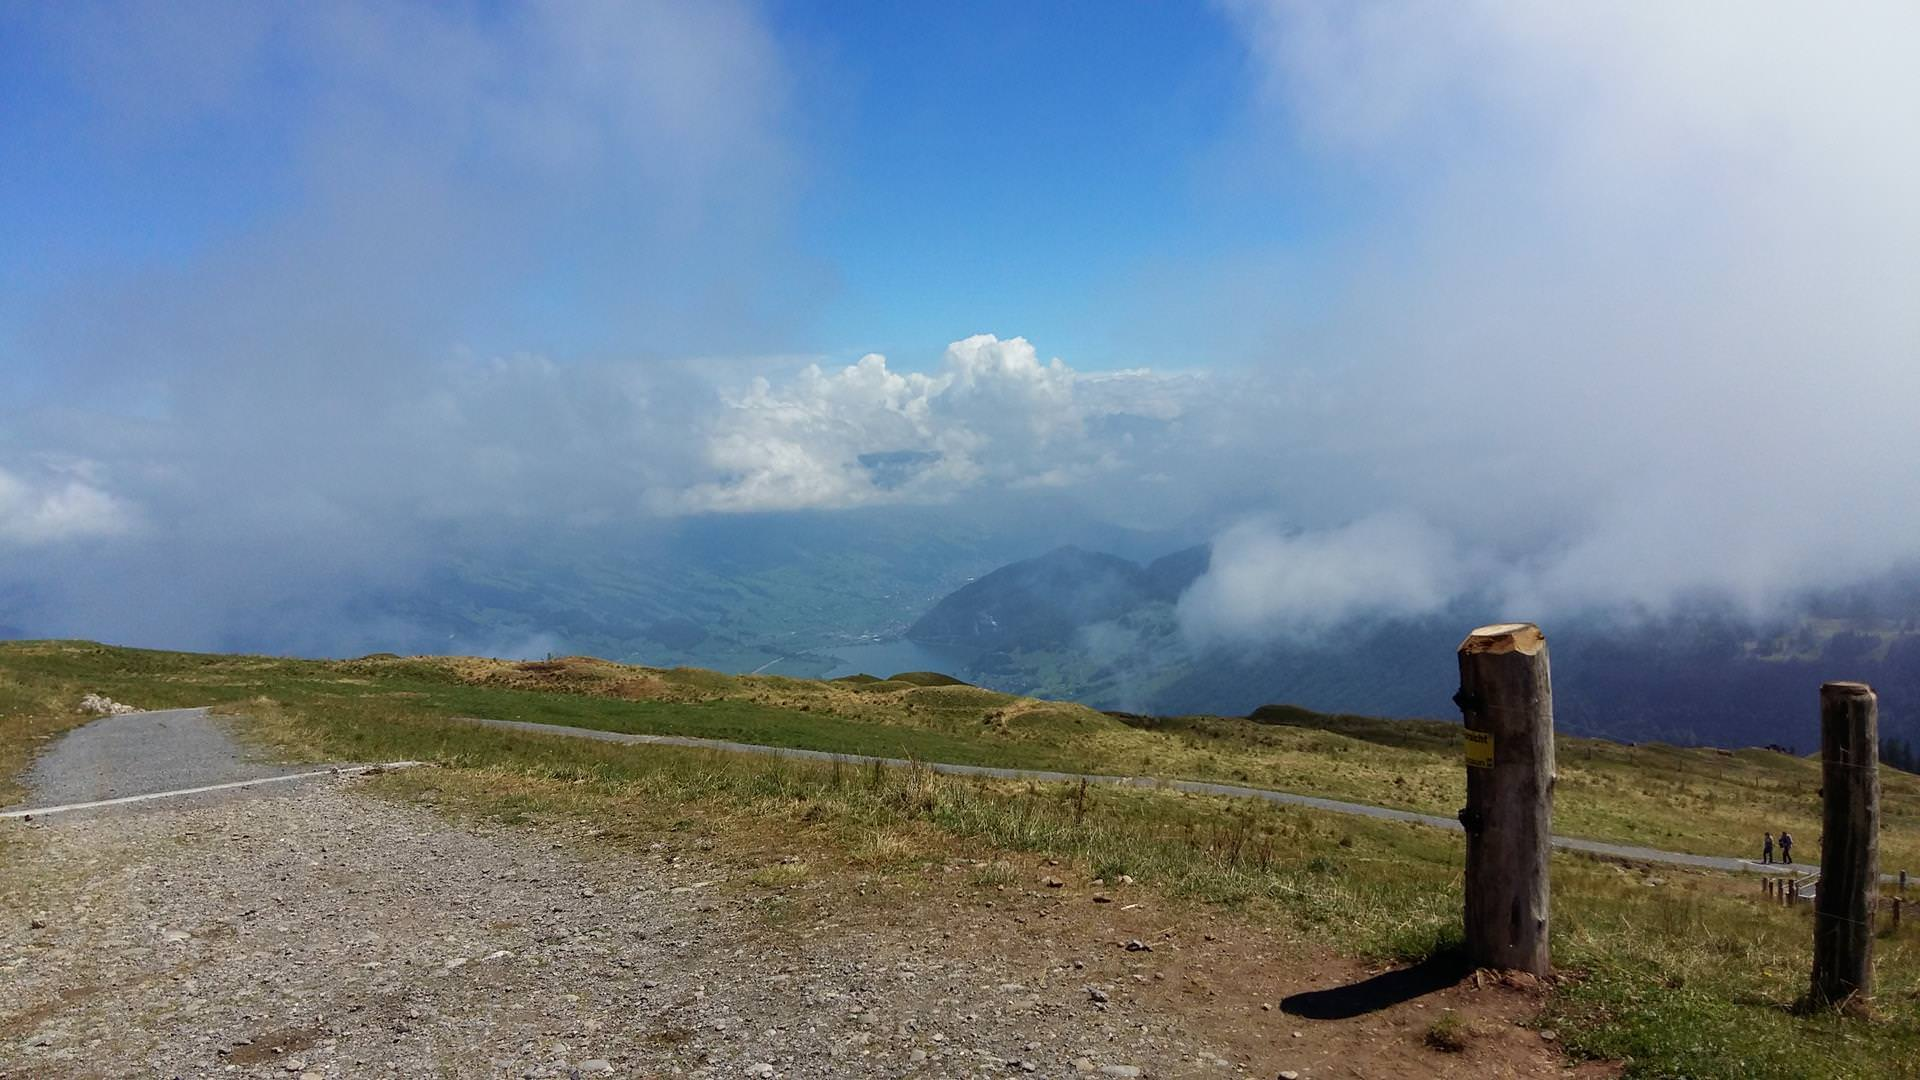 The view from the top of Mount Rigi, also known as Queen of the Mountains.